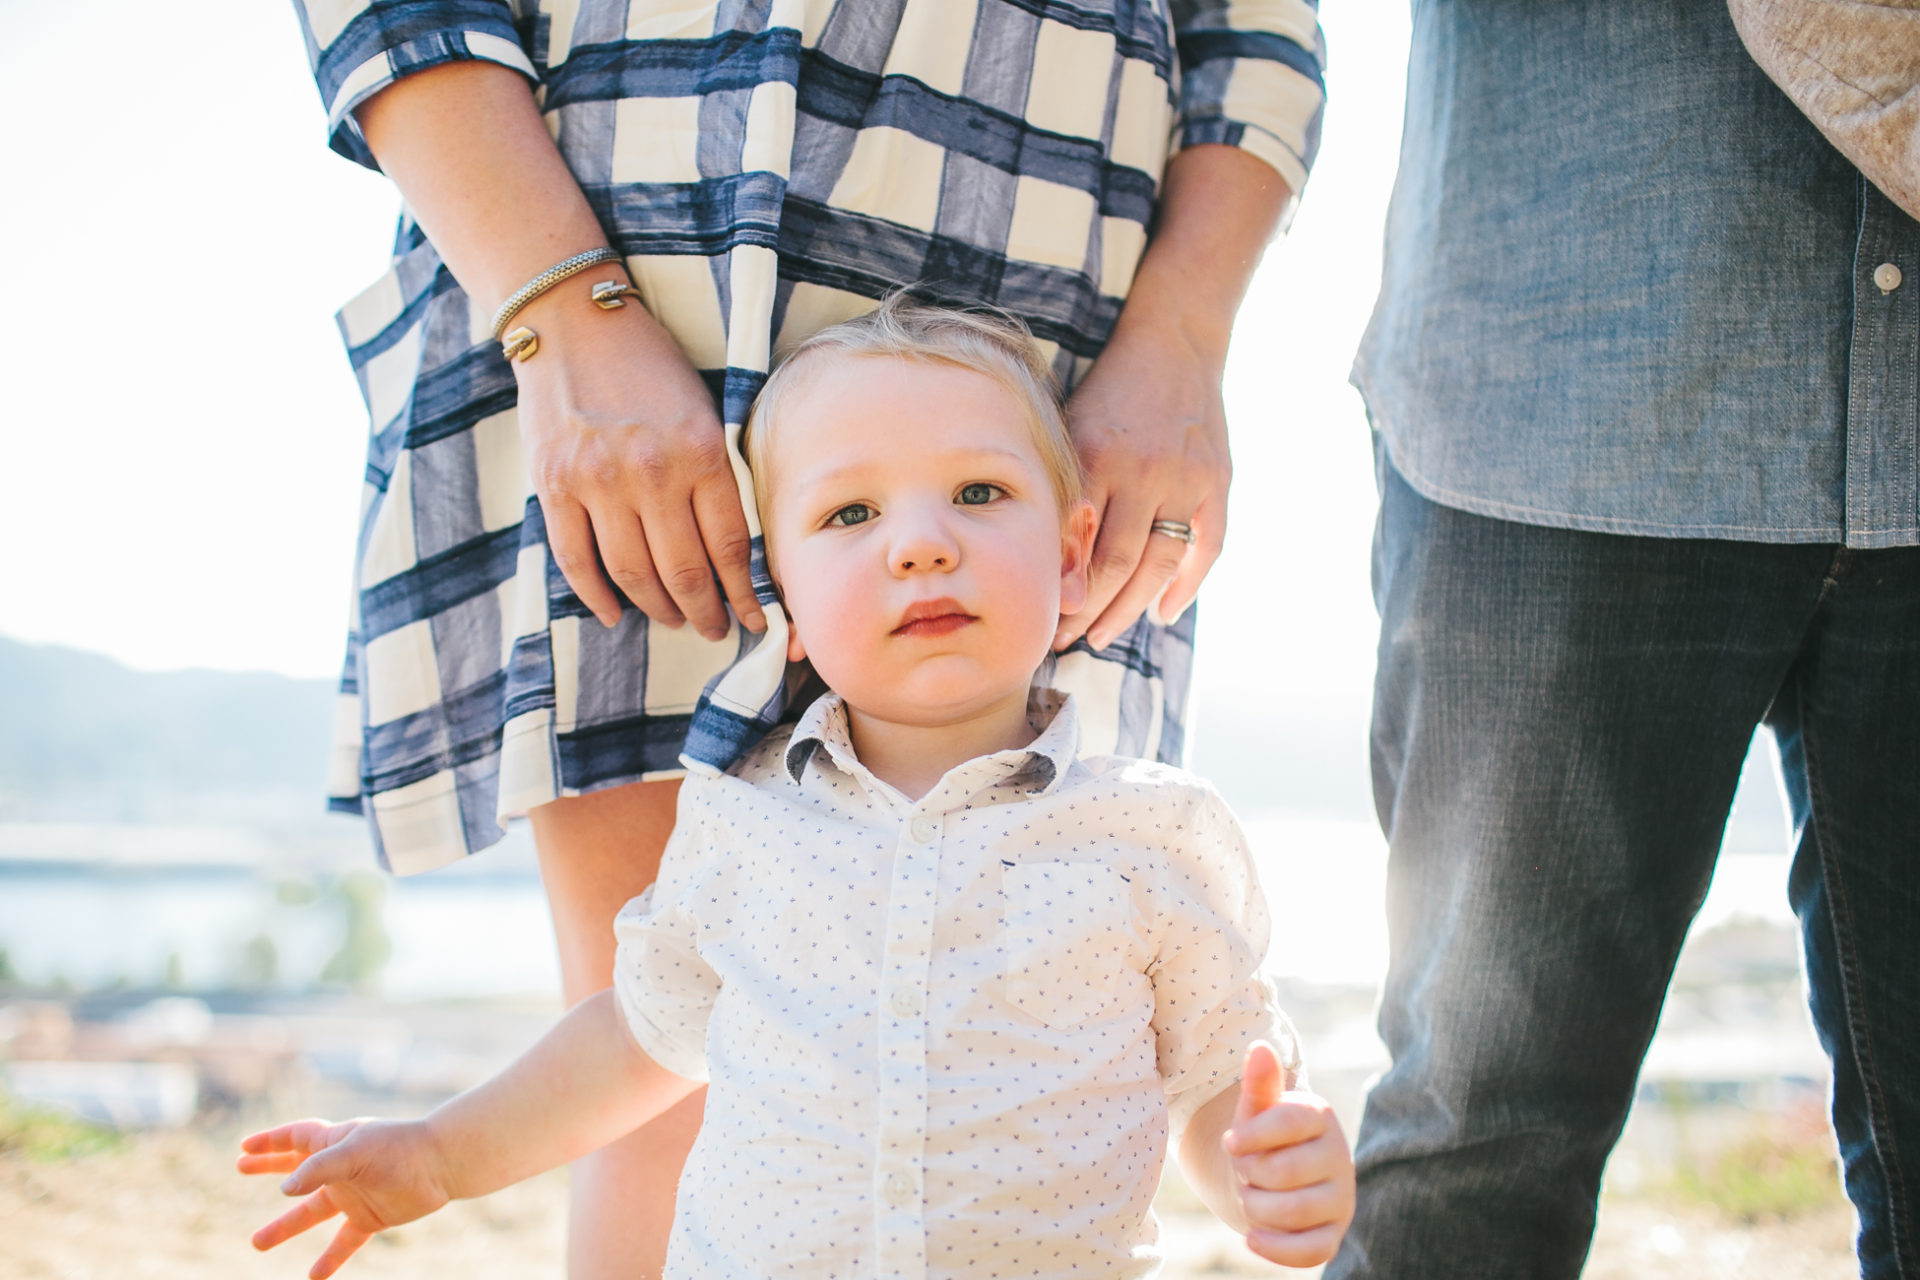 Lifestyle kid photography | Leah Verwey Photo